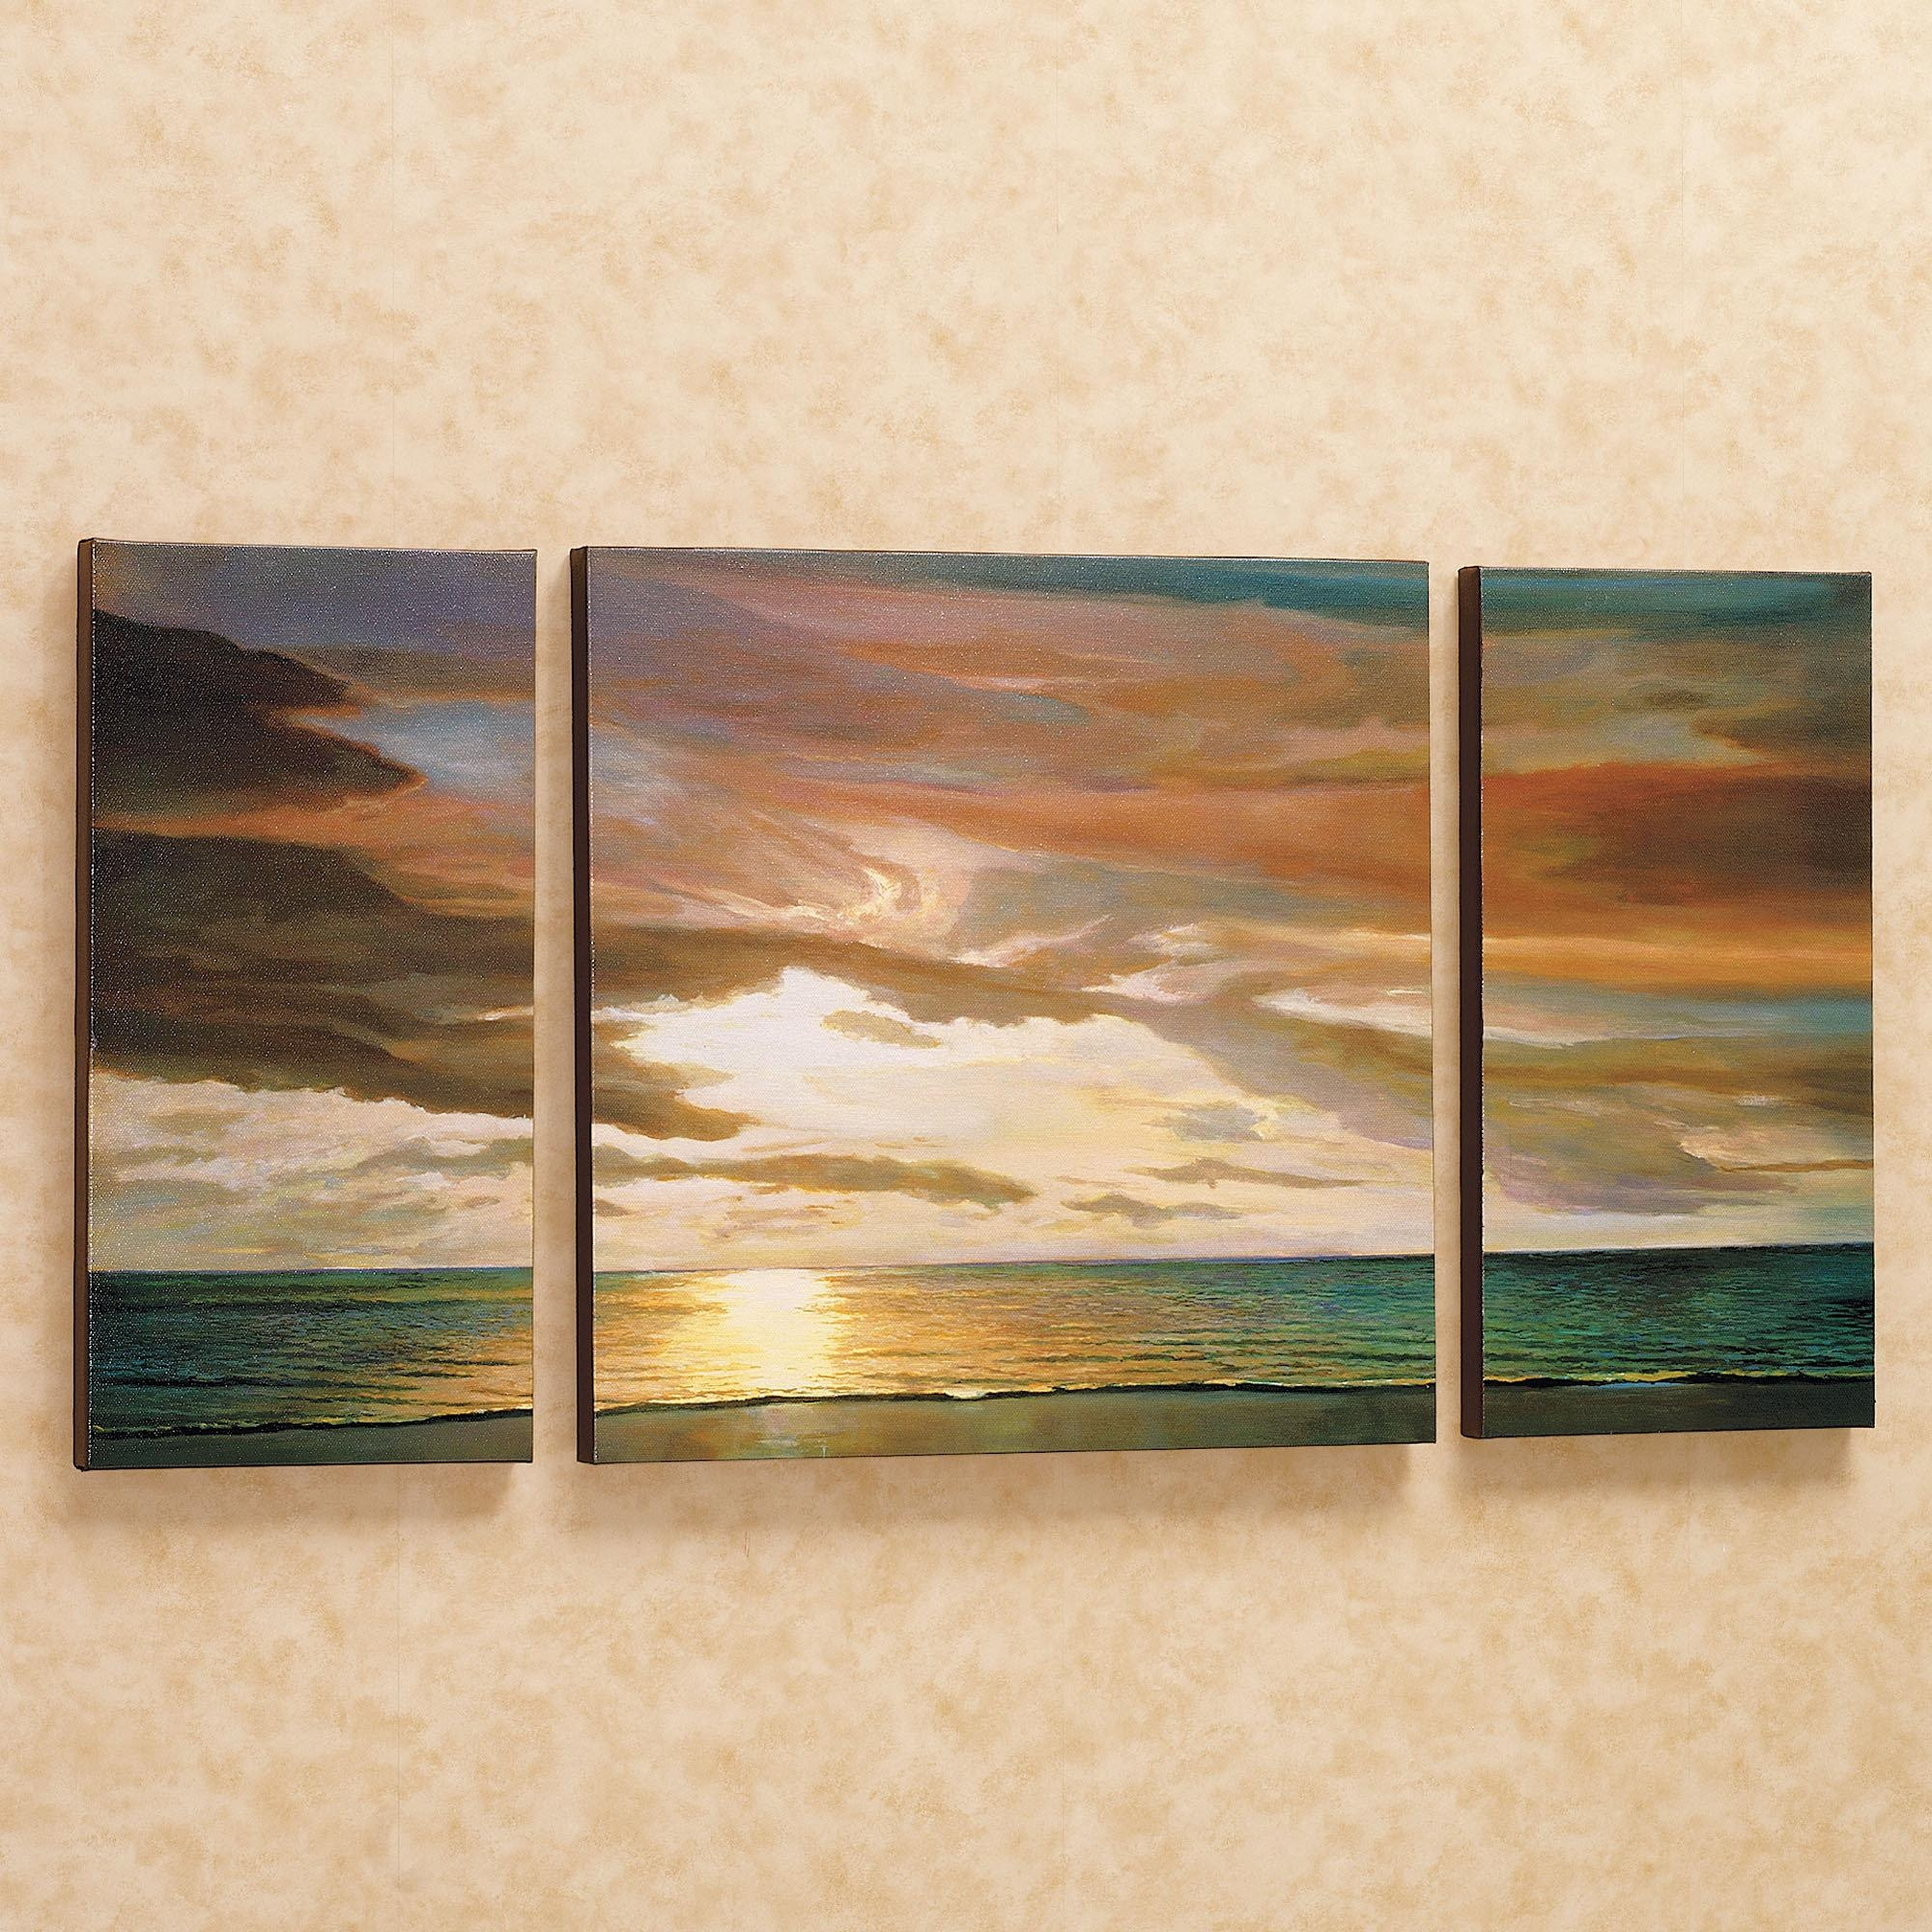 Wall Art Designs: Prints Canvas Triptych Wall Art Sale Large Metal Pertaining To Large Triptych Wall Art (View 2 of 20)